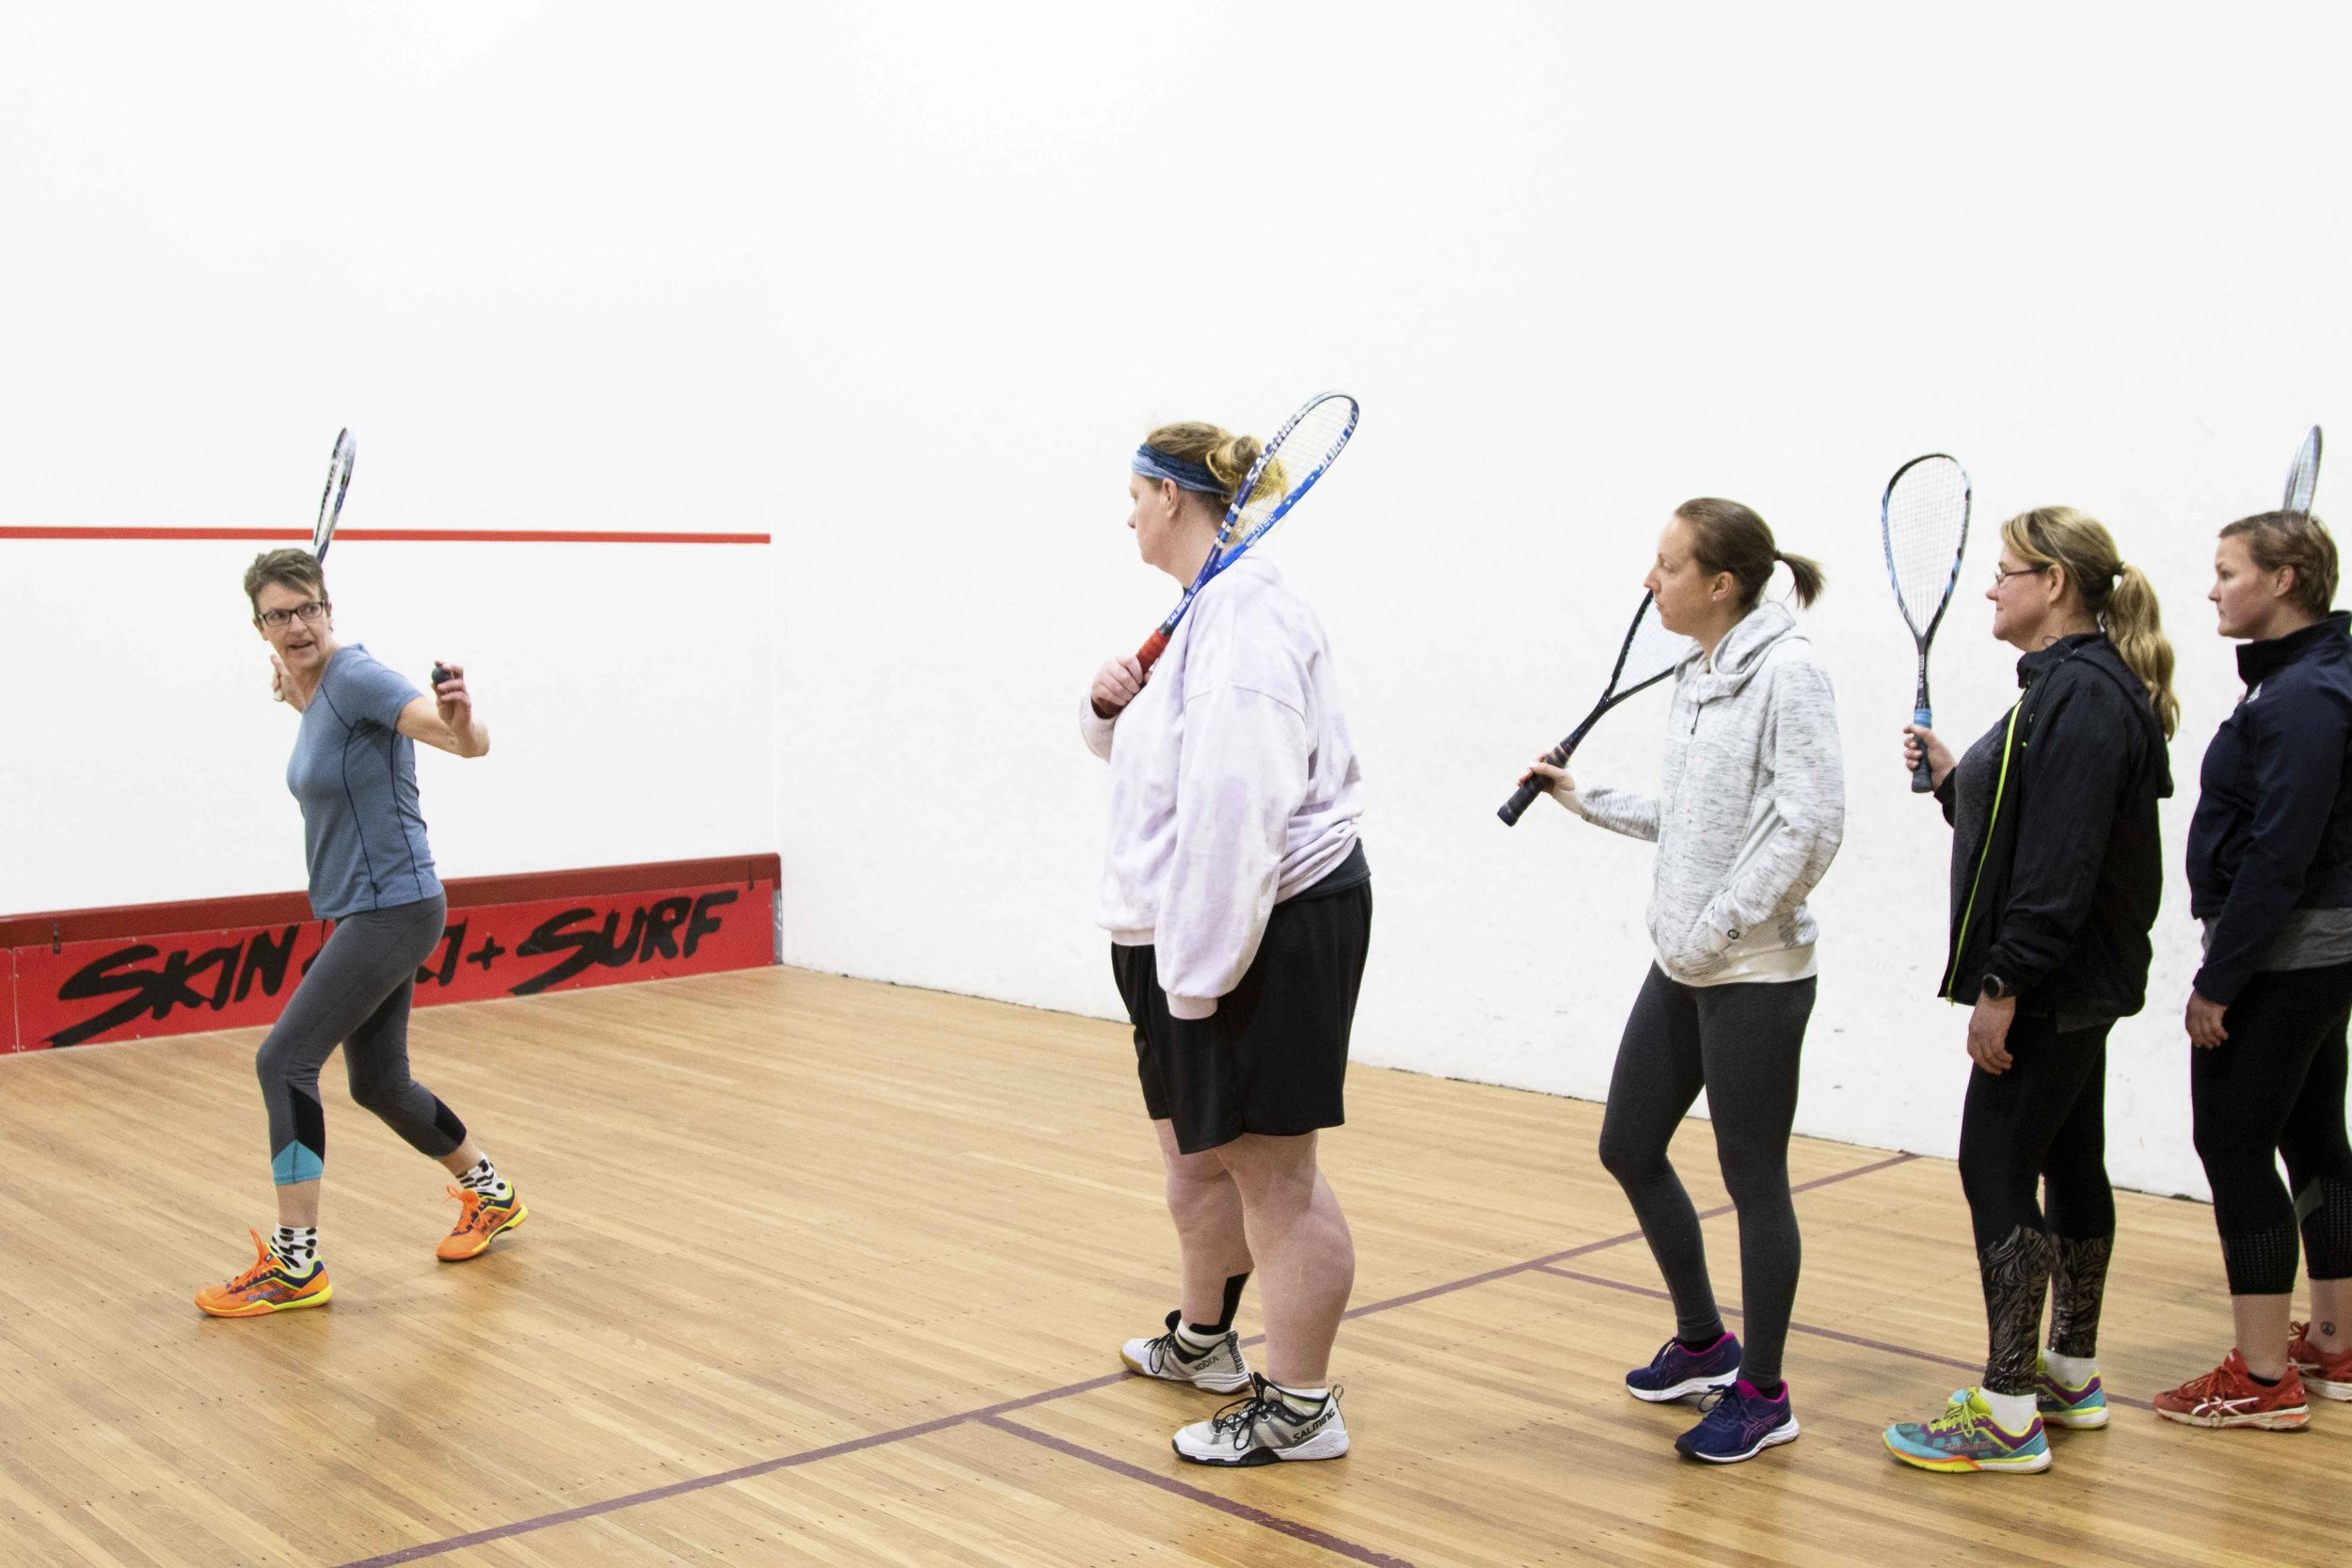 An all girls sporting experience in Bendigo that is great for fitness and making new friends. Find out just how fun squash can be.